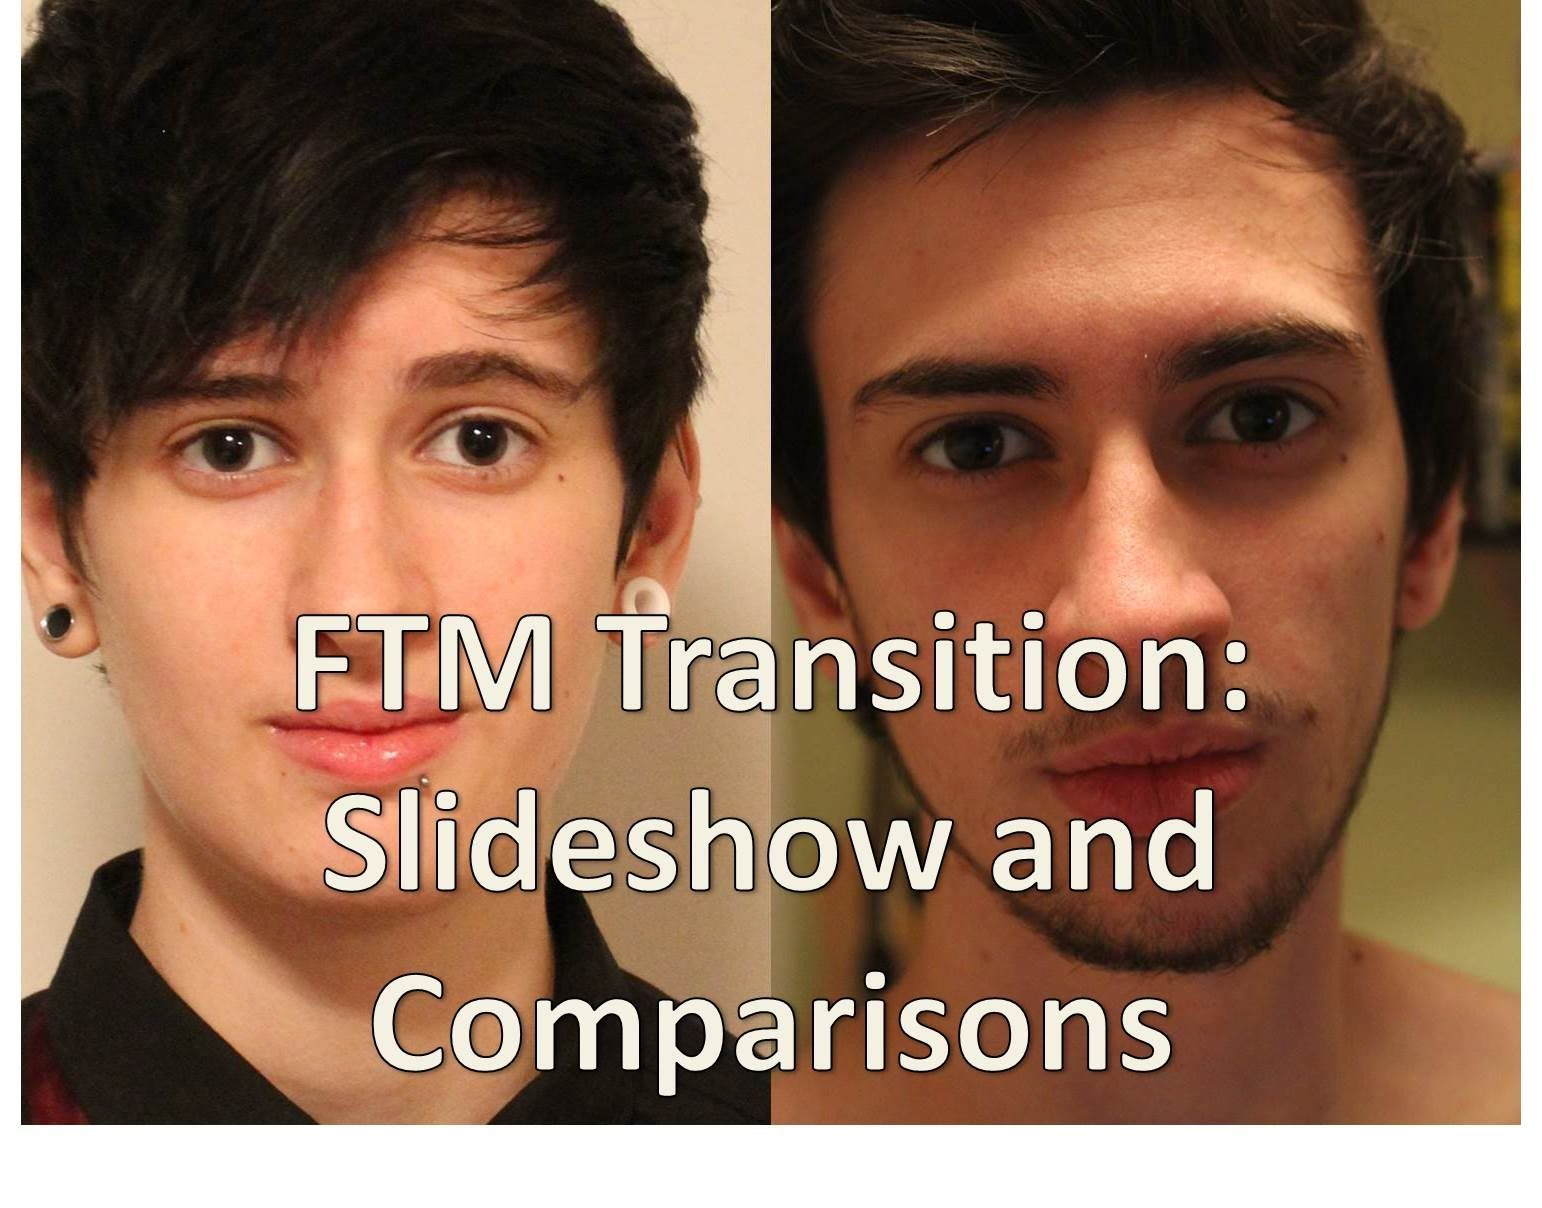 Ftm Transgender Transition Timeline Slideshow And Comparisons Nearly -8039